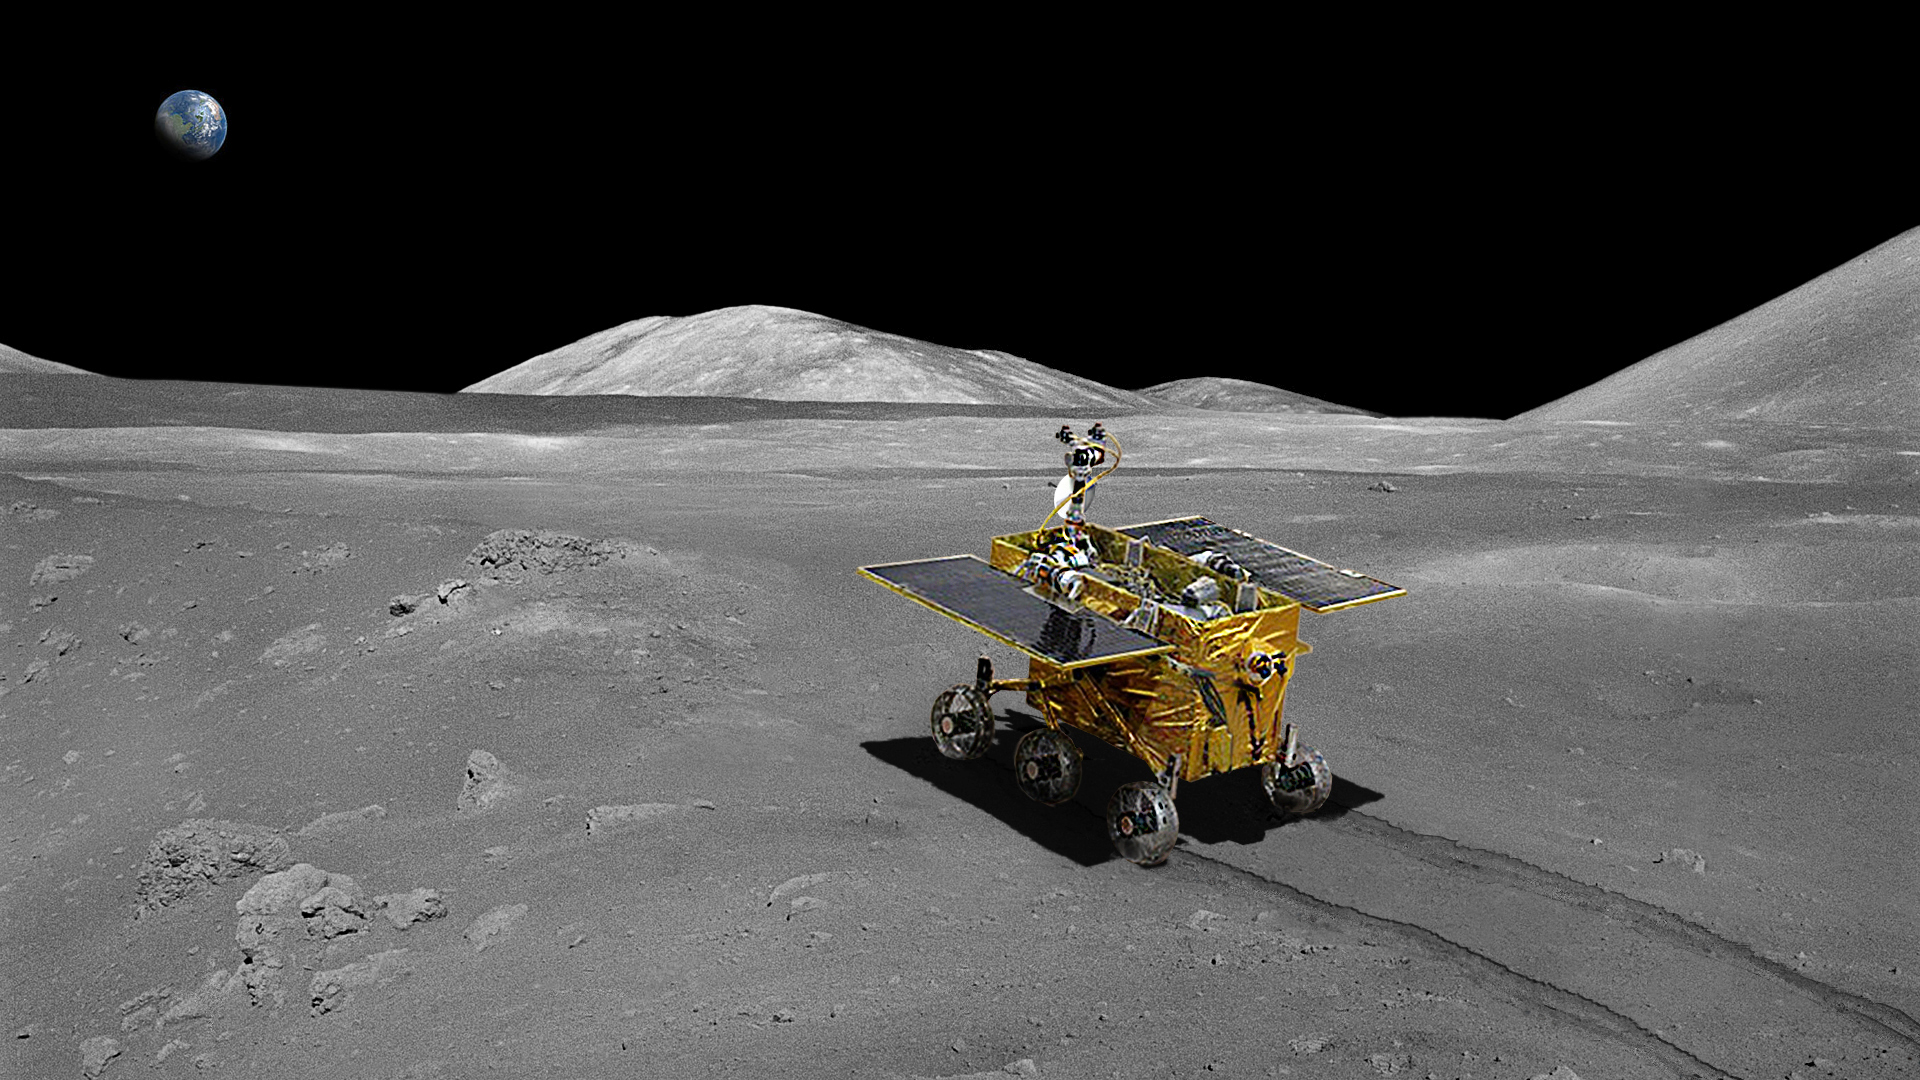 Chang'e 3 Photos: China's 1st Moon Lander & Rover Mission